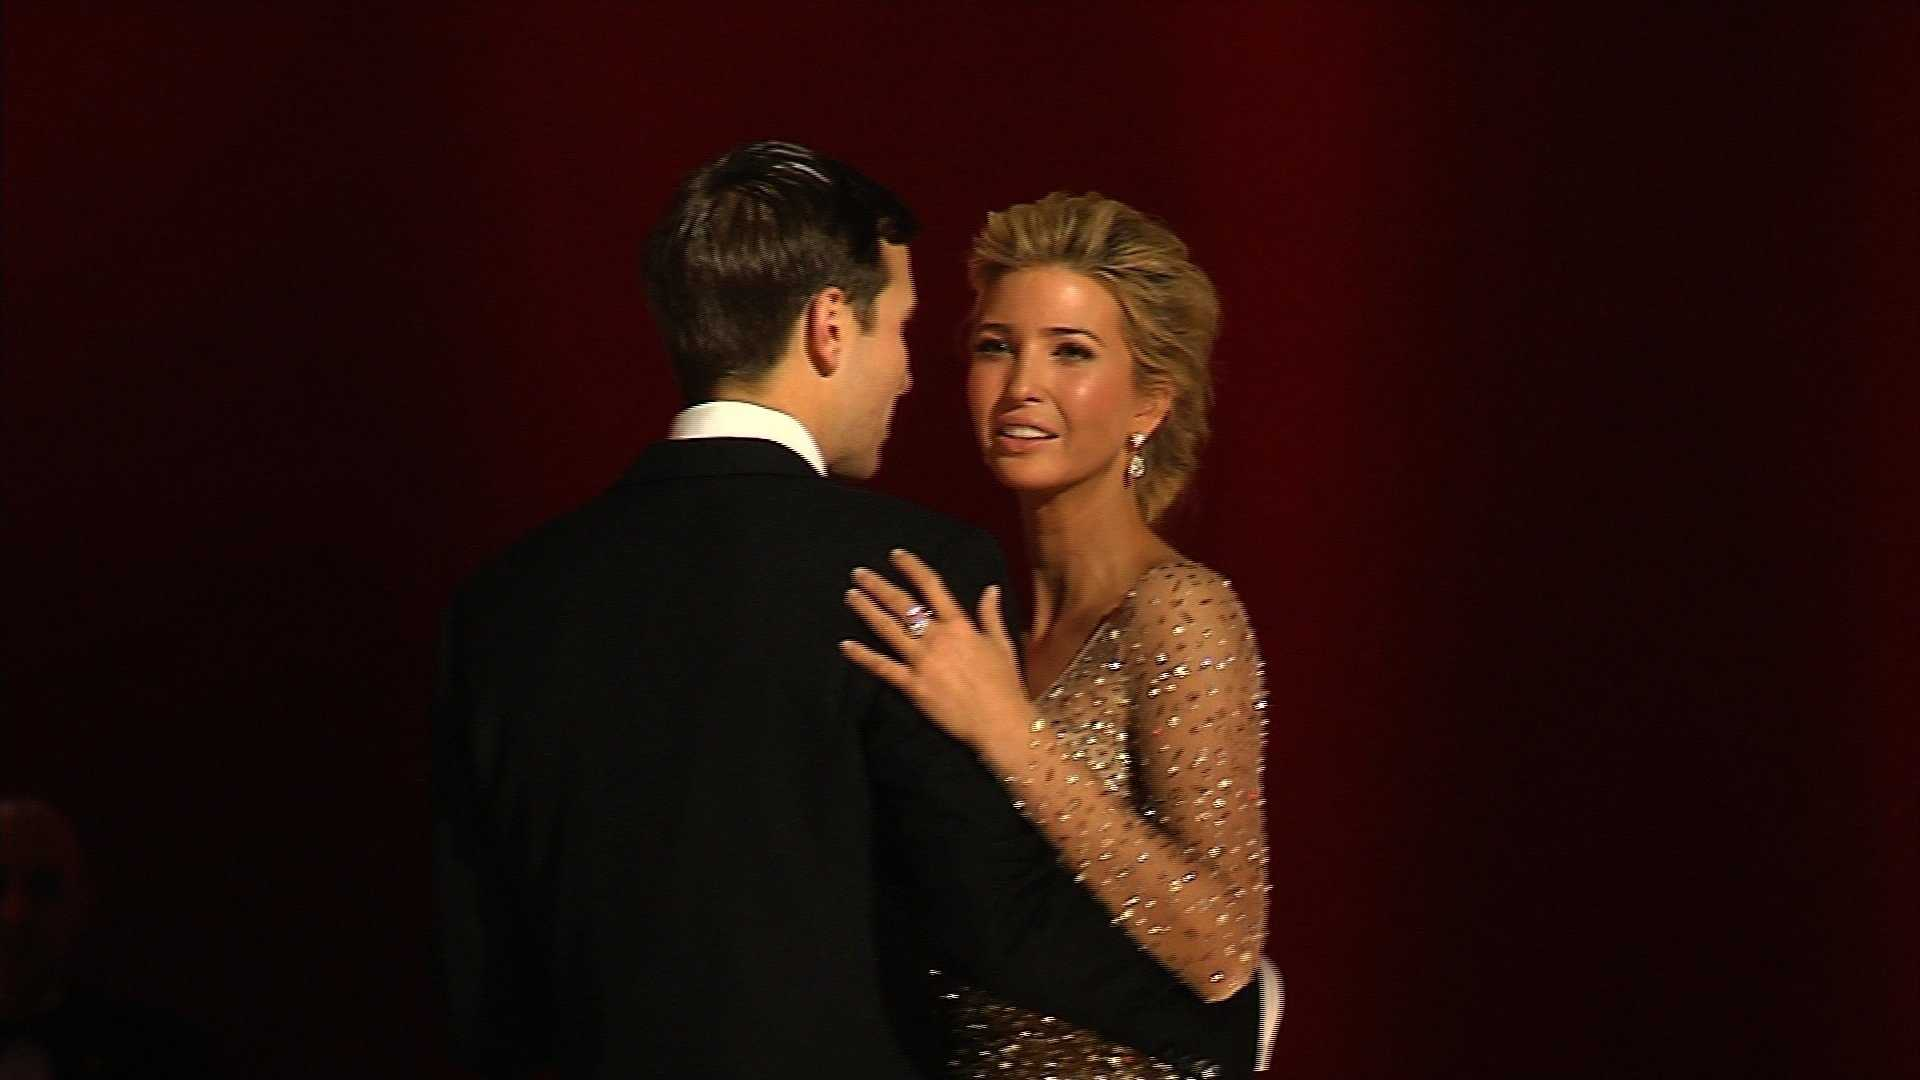 Ivanka Trump dances with husband Jared Kushner at the inaugural ball on January 20, 2017